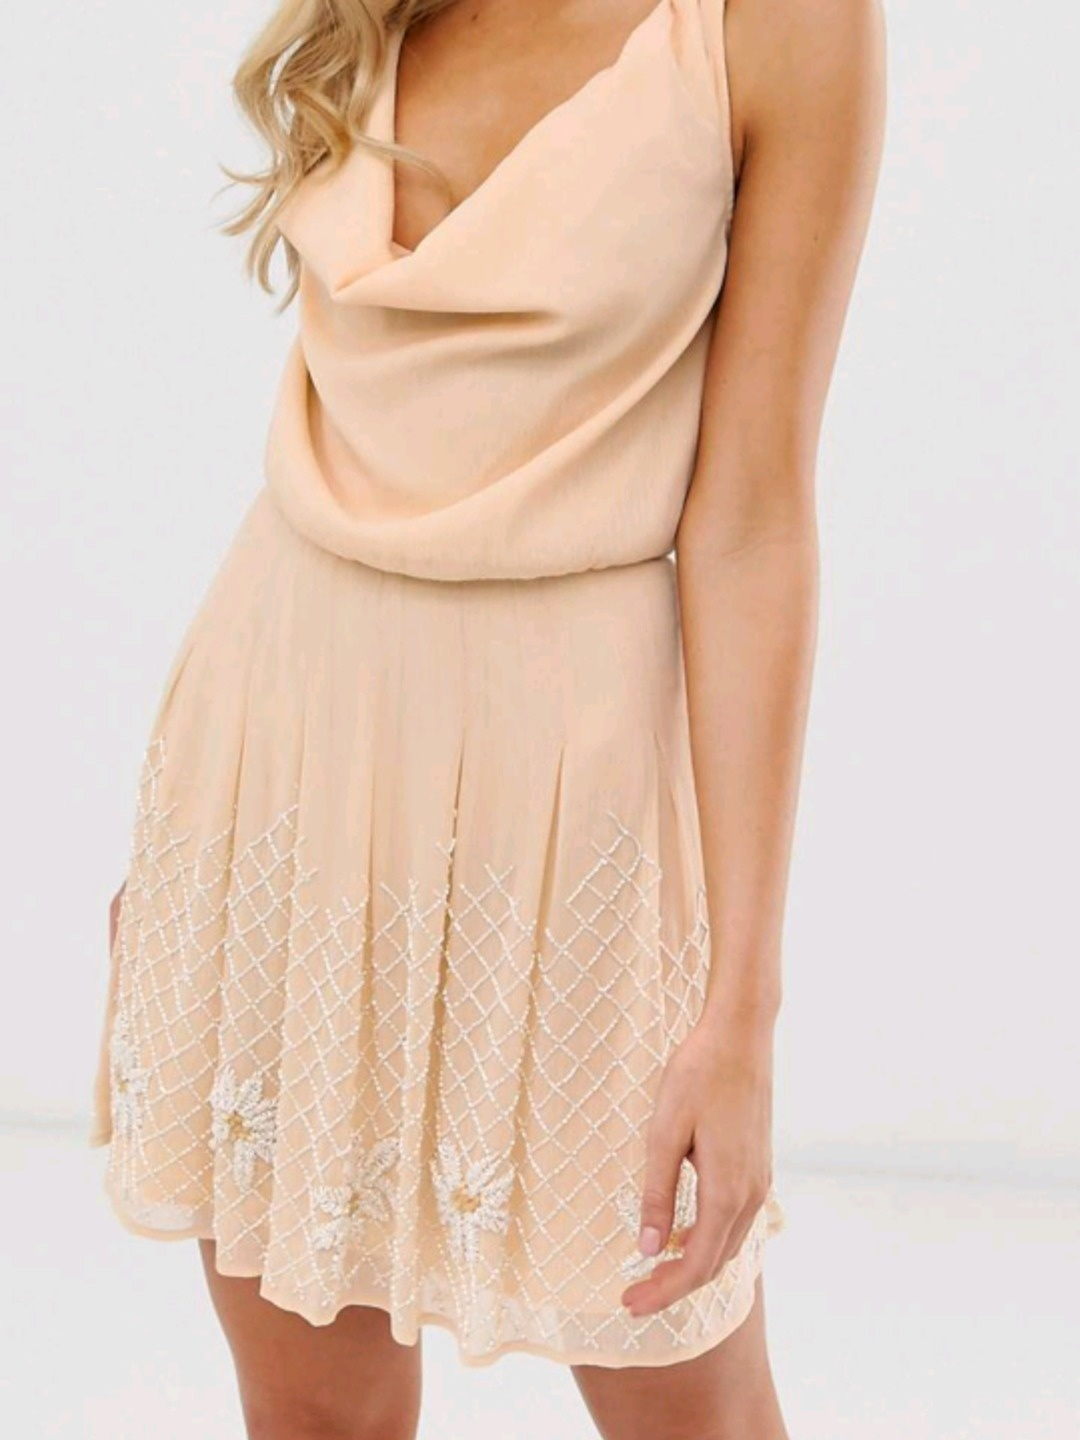 Women's dresses - ASOS photo 4